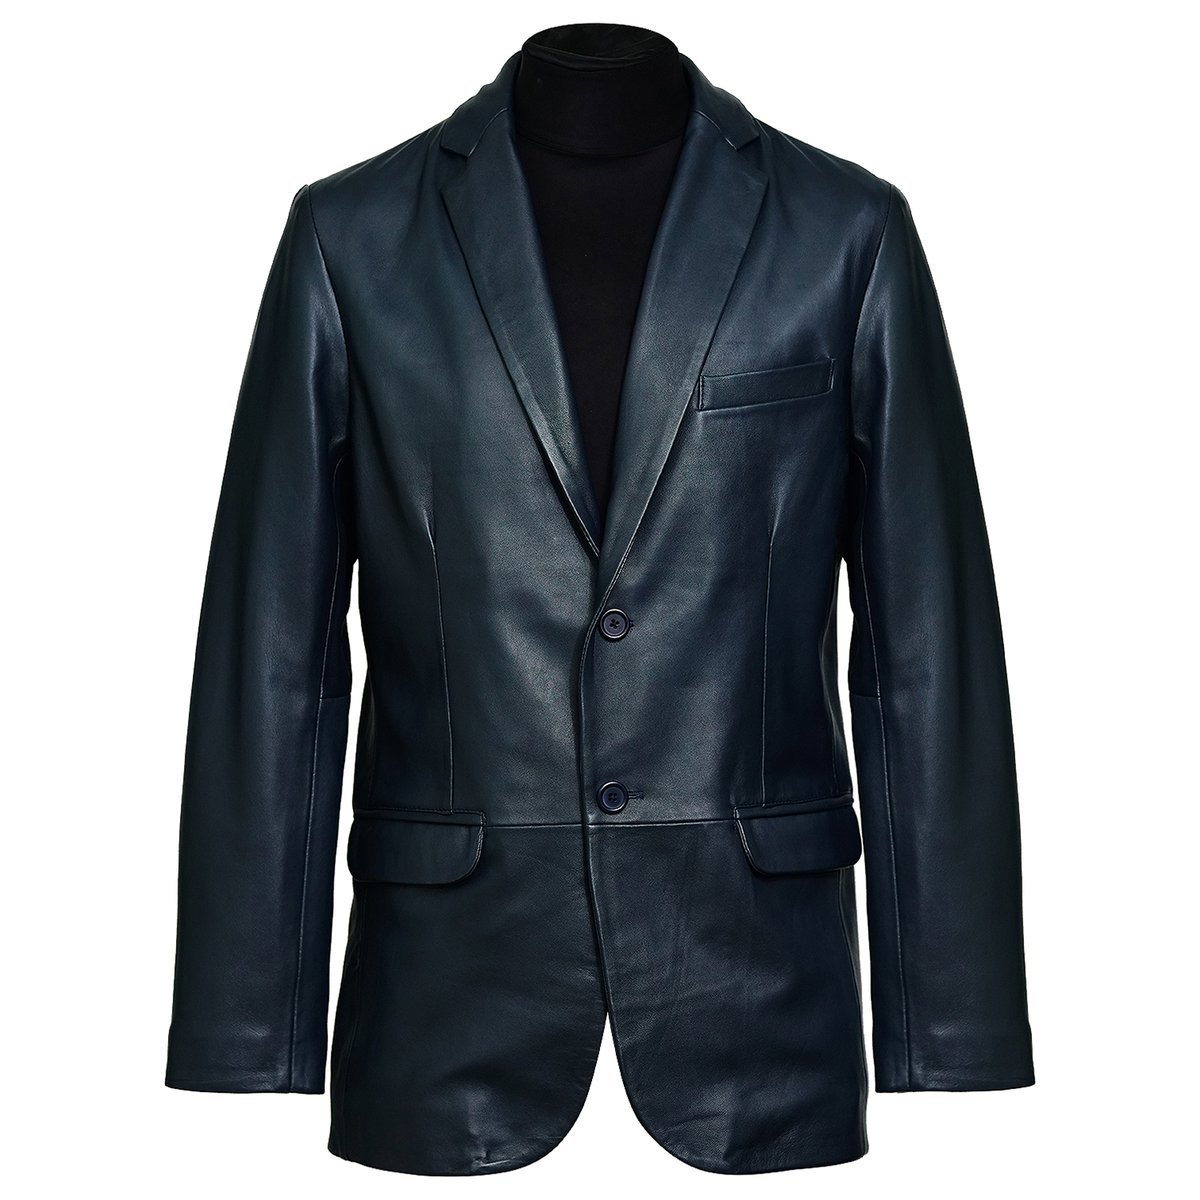 Lambskin Blazer Coat  Long Natural Leather in this one is excellent for wintery times! Color: Navy Size: XS, S, M, L, XL, 2XL, 3XL, 4XL, 5XL Shop Now:  Follow @clasicuwears  #clasicuwear #jacket #menjacket  #leatherjacket #leatherjacketformen #style